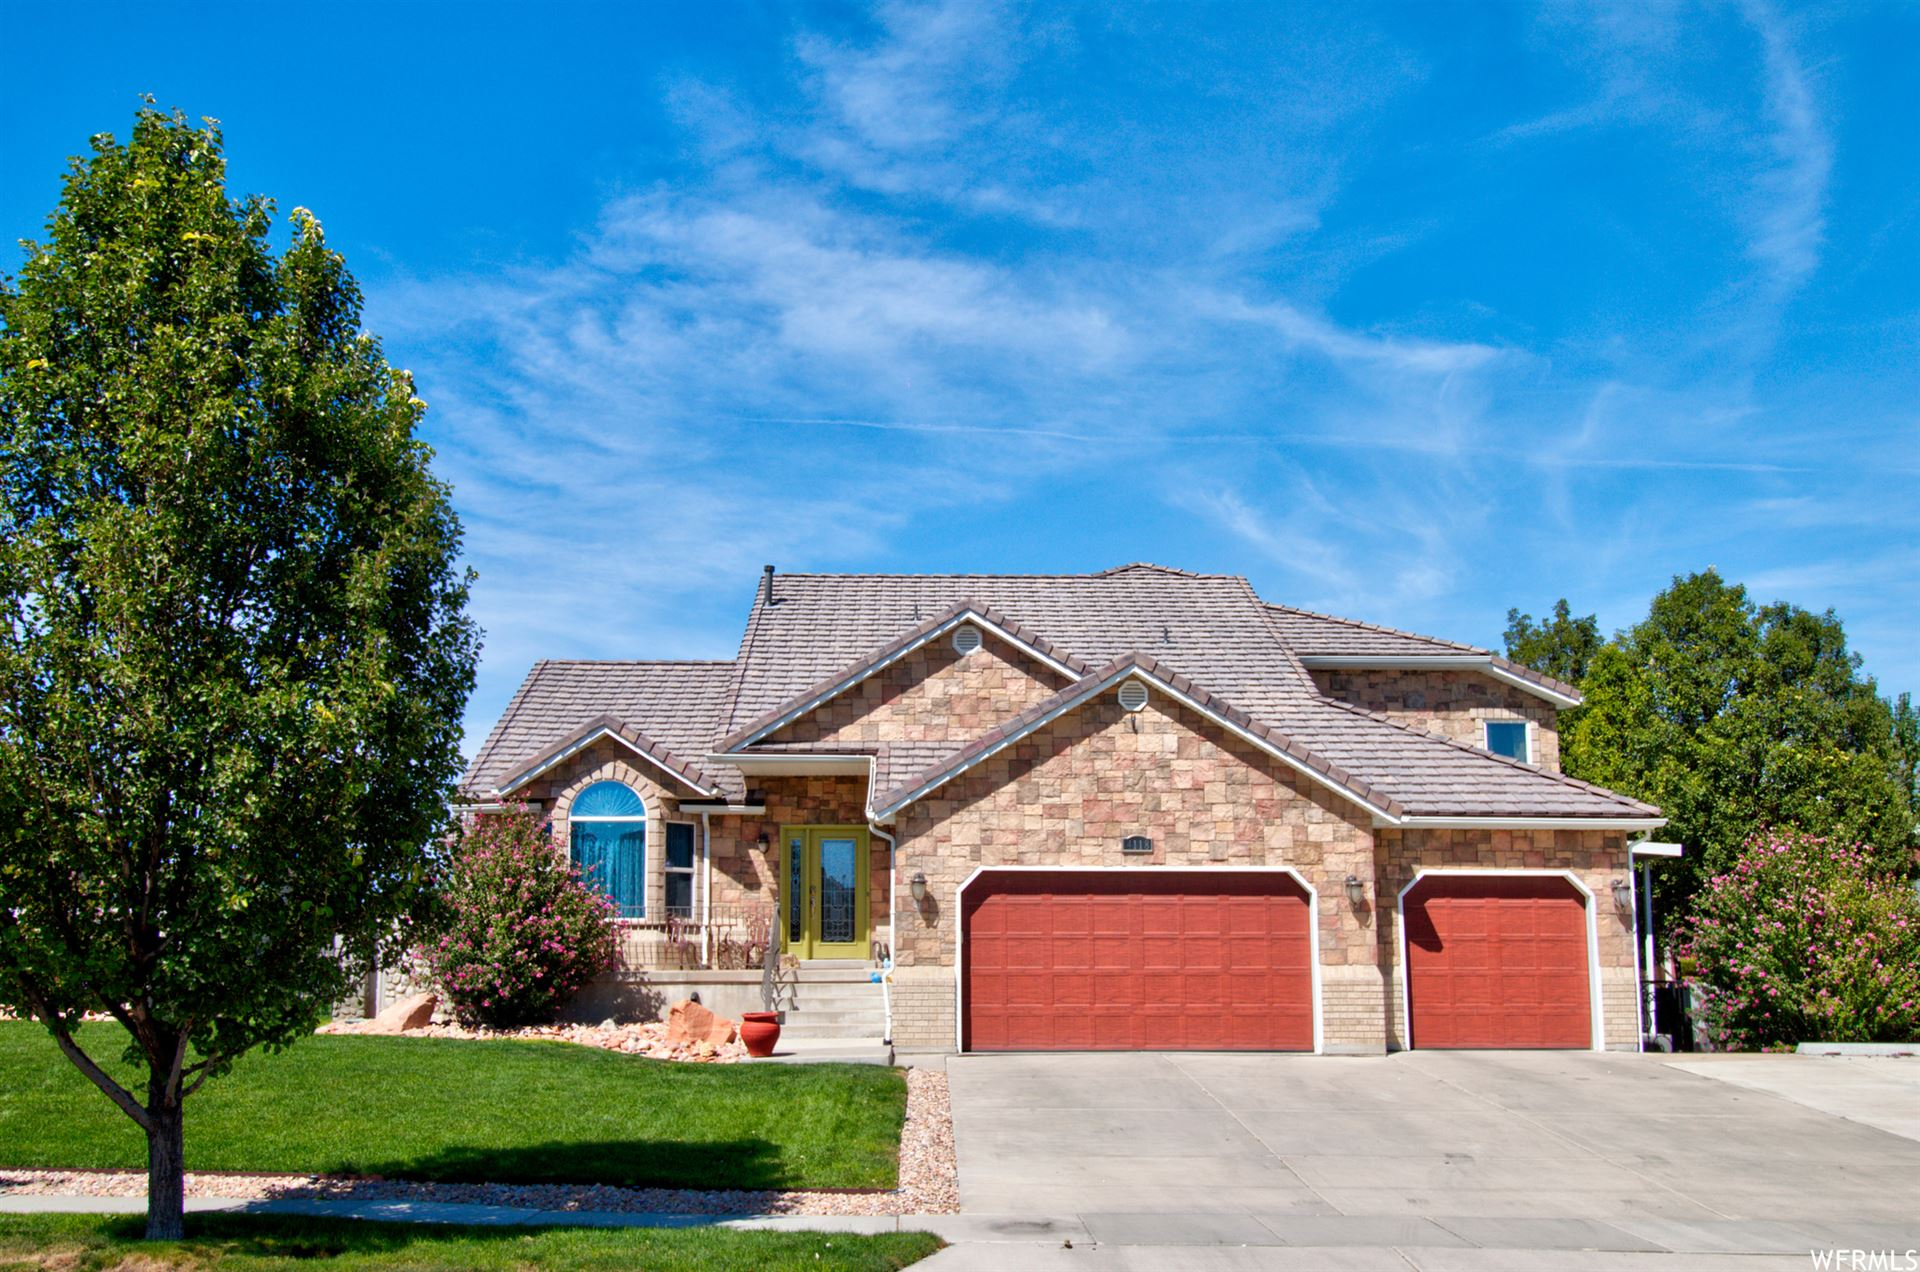 Photo of 4118 W 12050 S, Riverton, UT 84096 (MLS # 1701029)